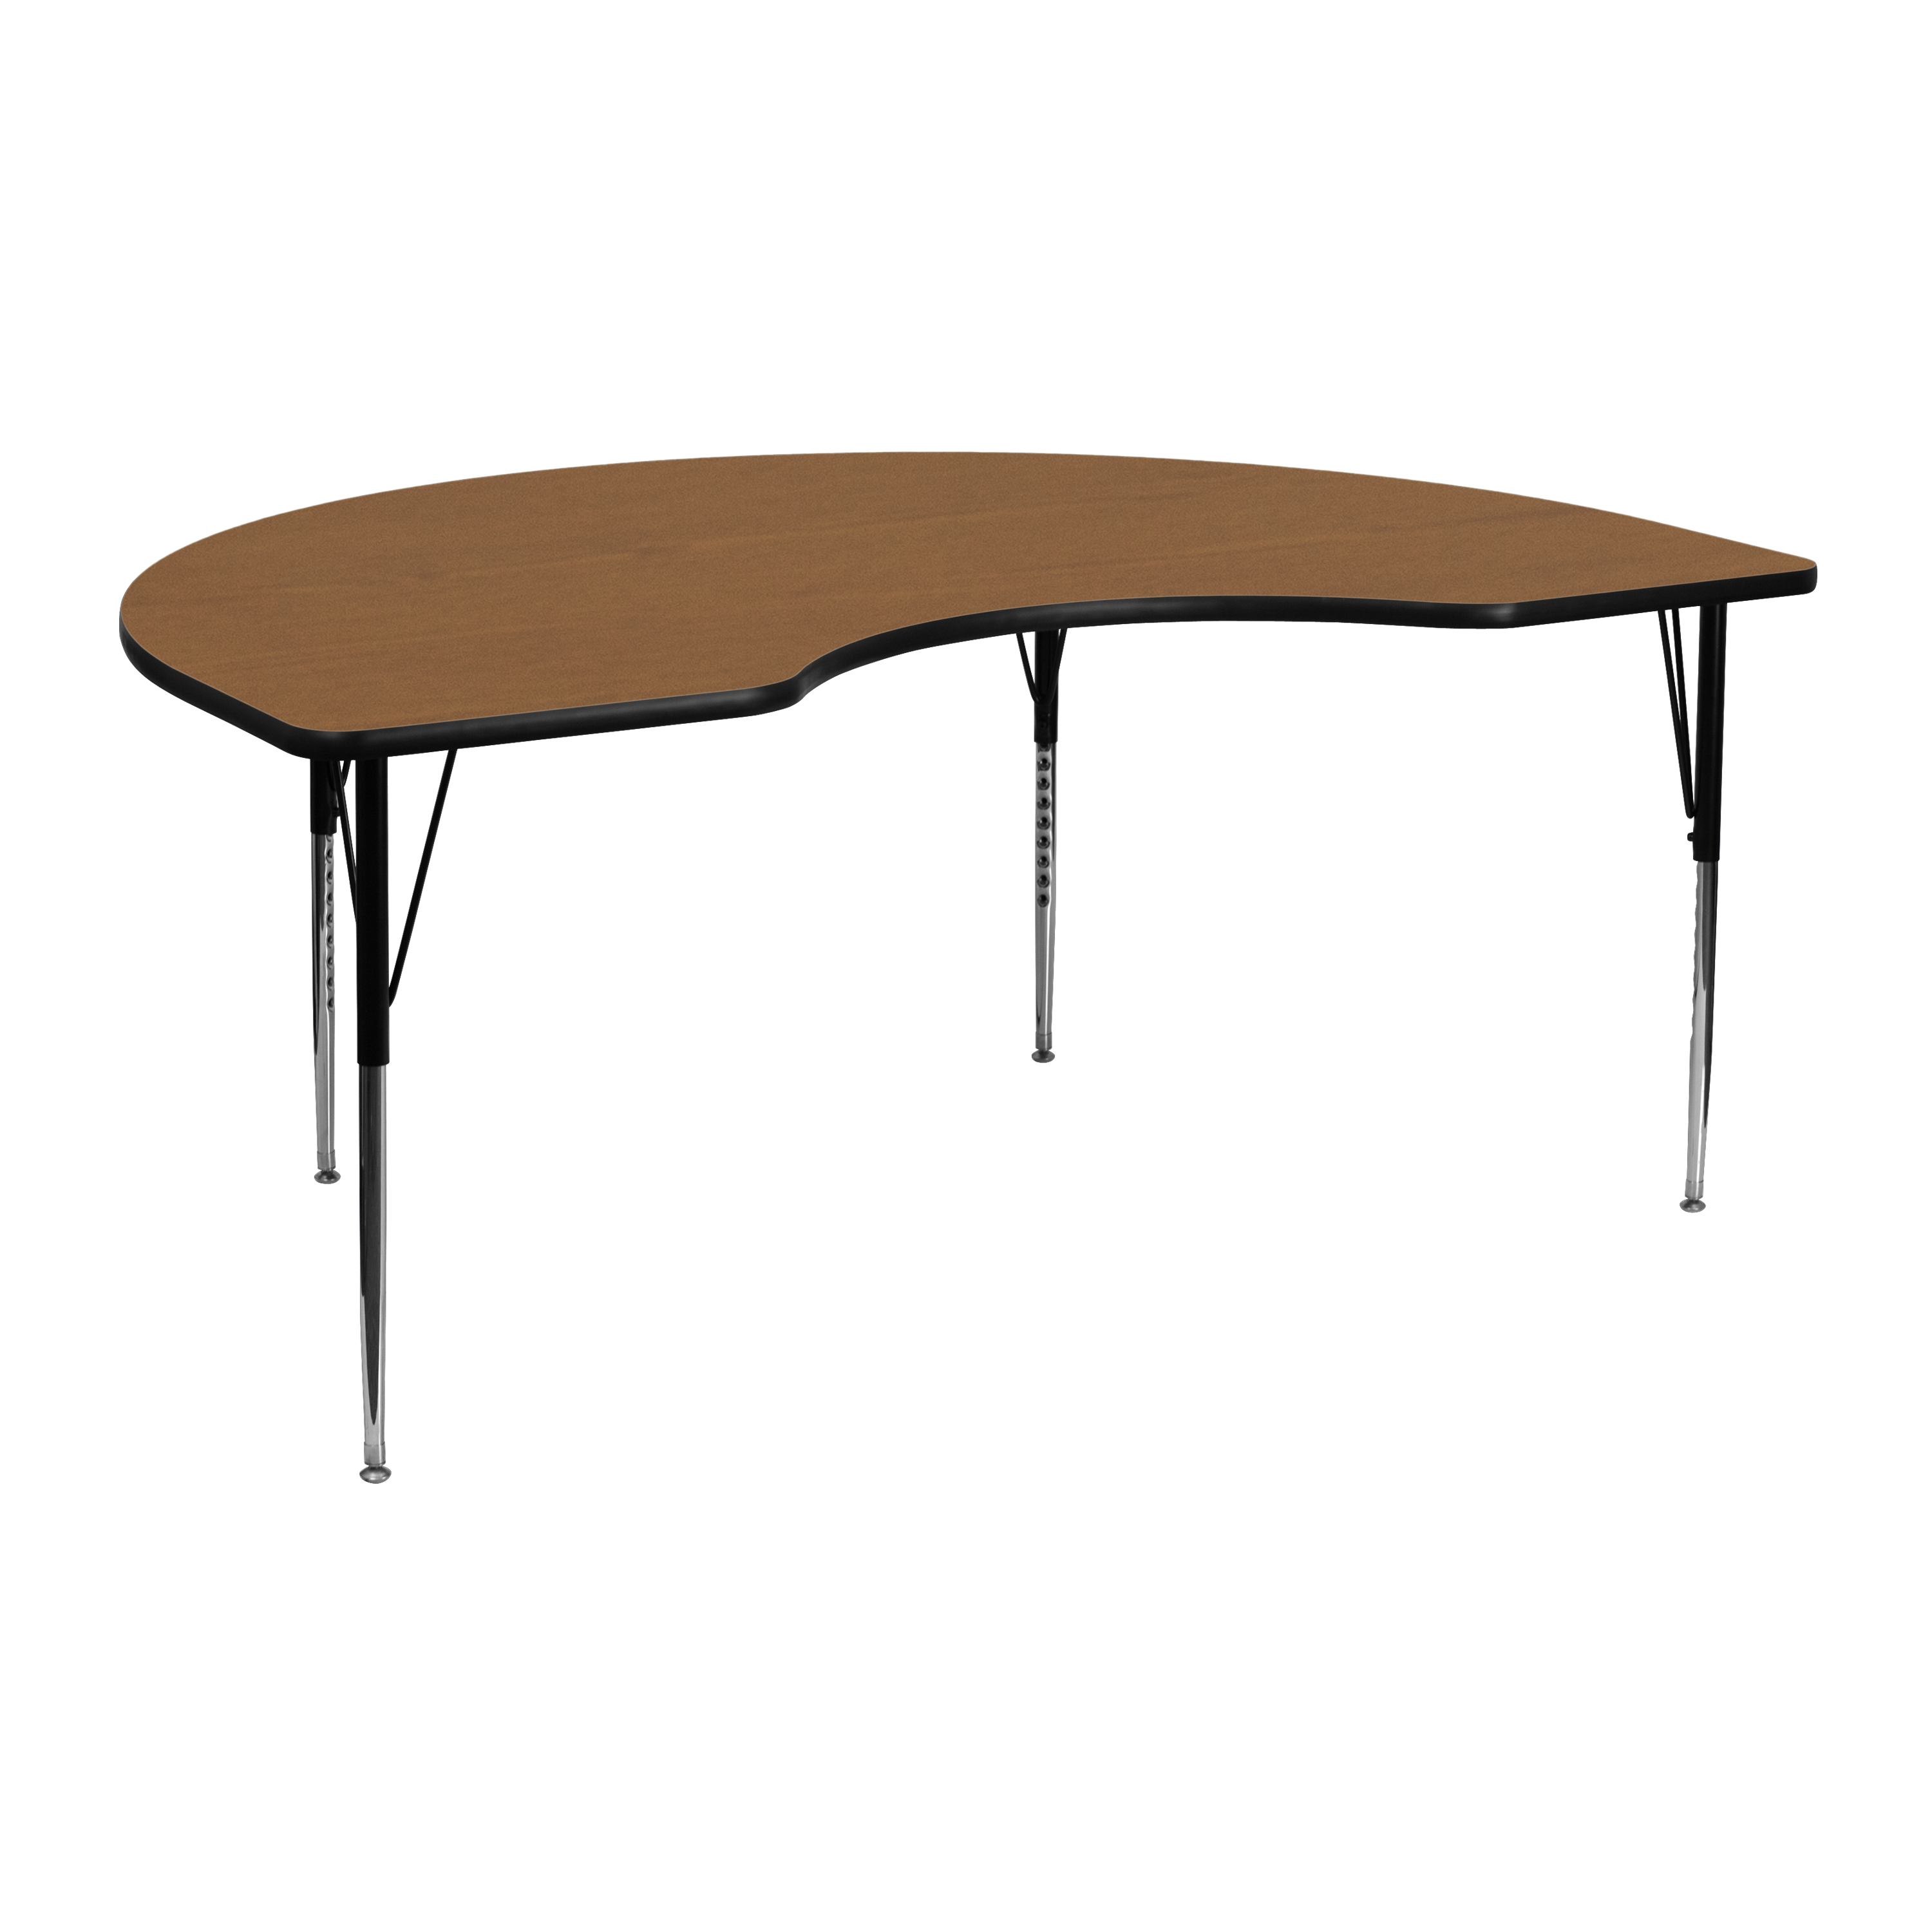 Flash Furniture 48 W X 72 L Kidney Shaped Activity Table With Oak Thermal Fused Laminate Top And Standard Height Adjustable Legs Walmart Com Walmart Com